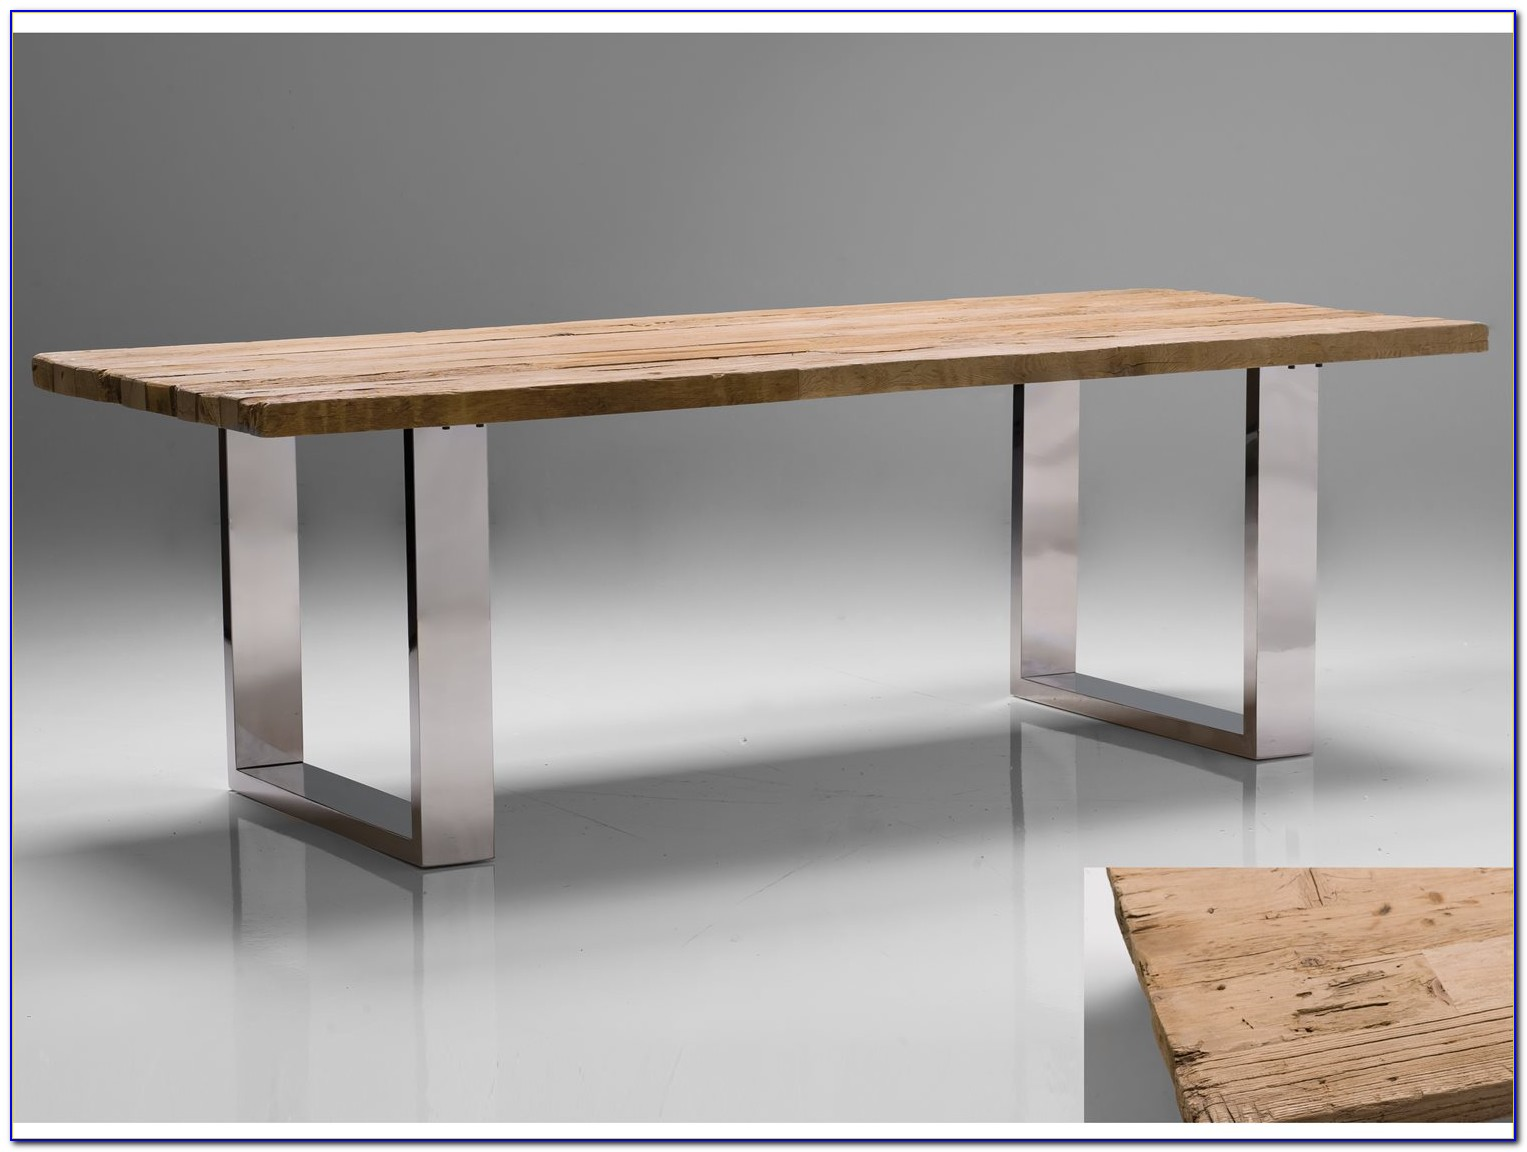 Solid Wood Table Top Construction